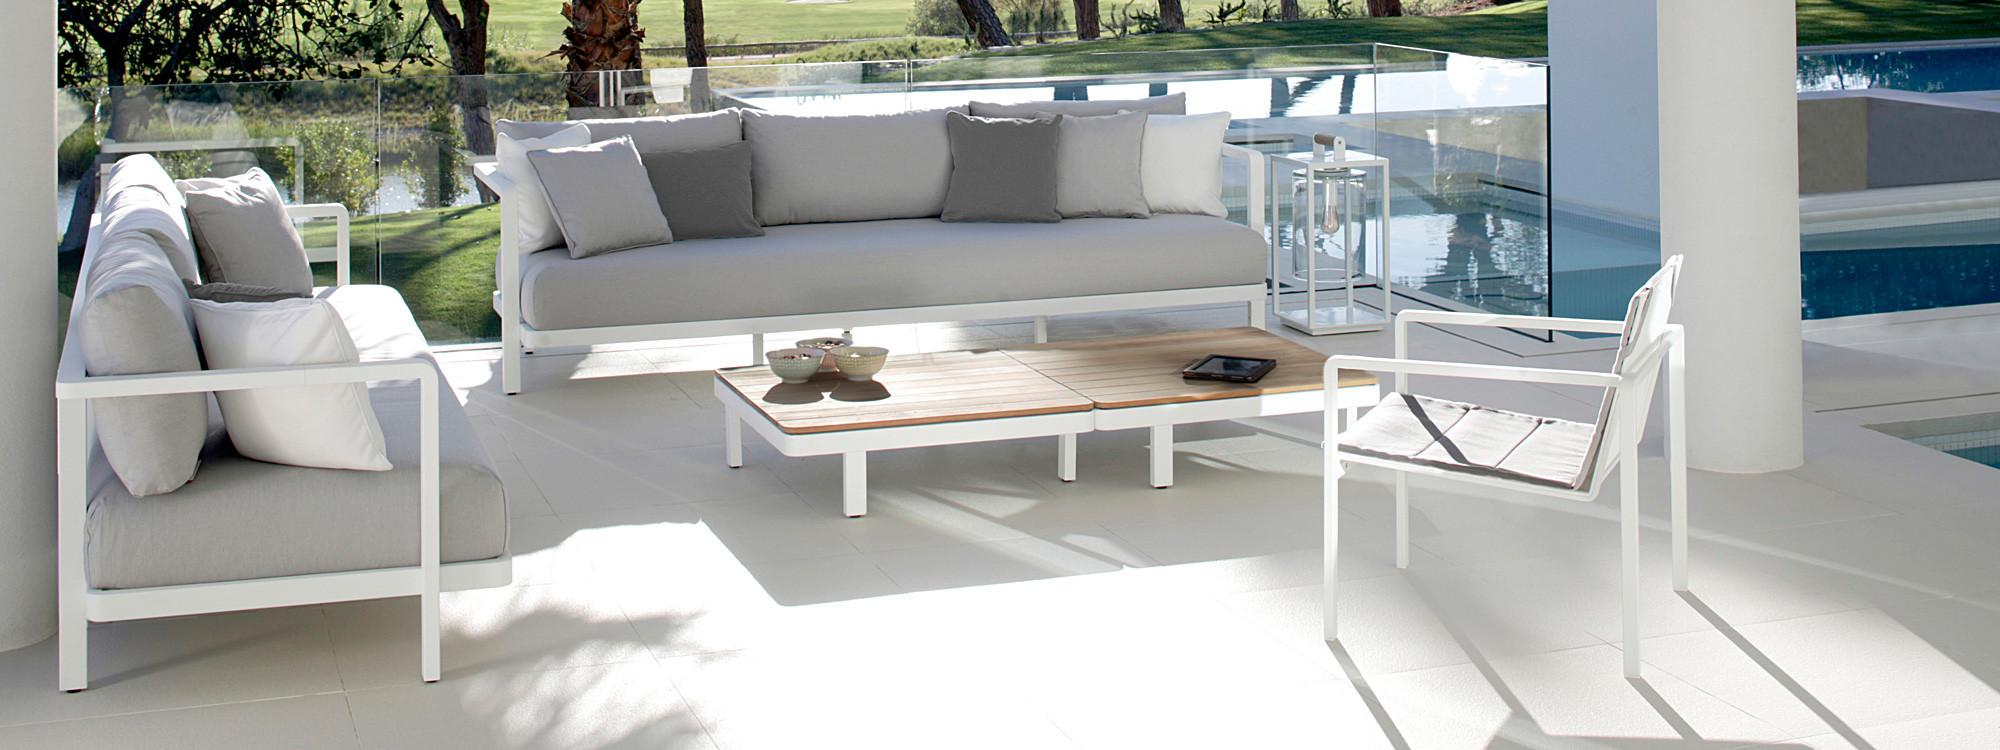 Expensive Patio Furniture Brands Beaufort